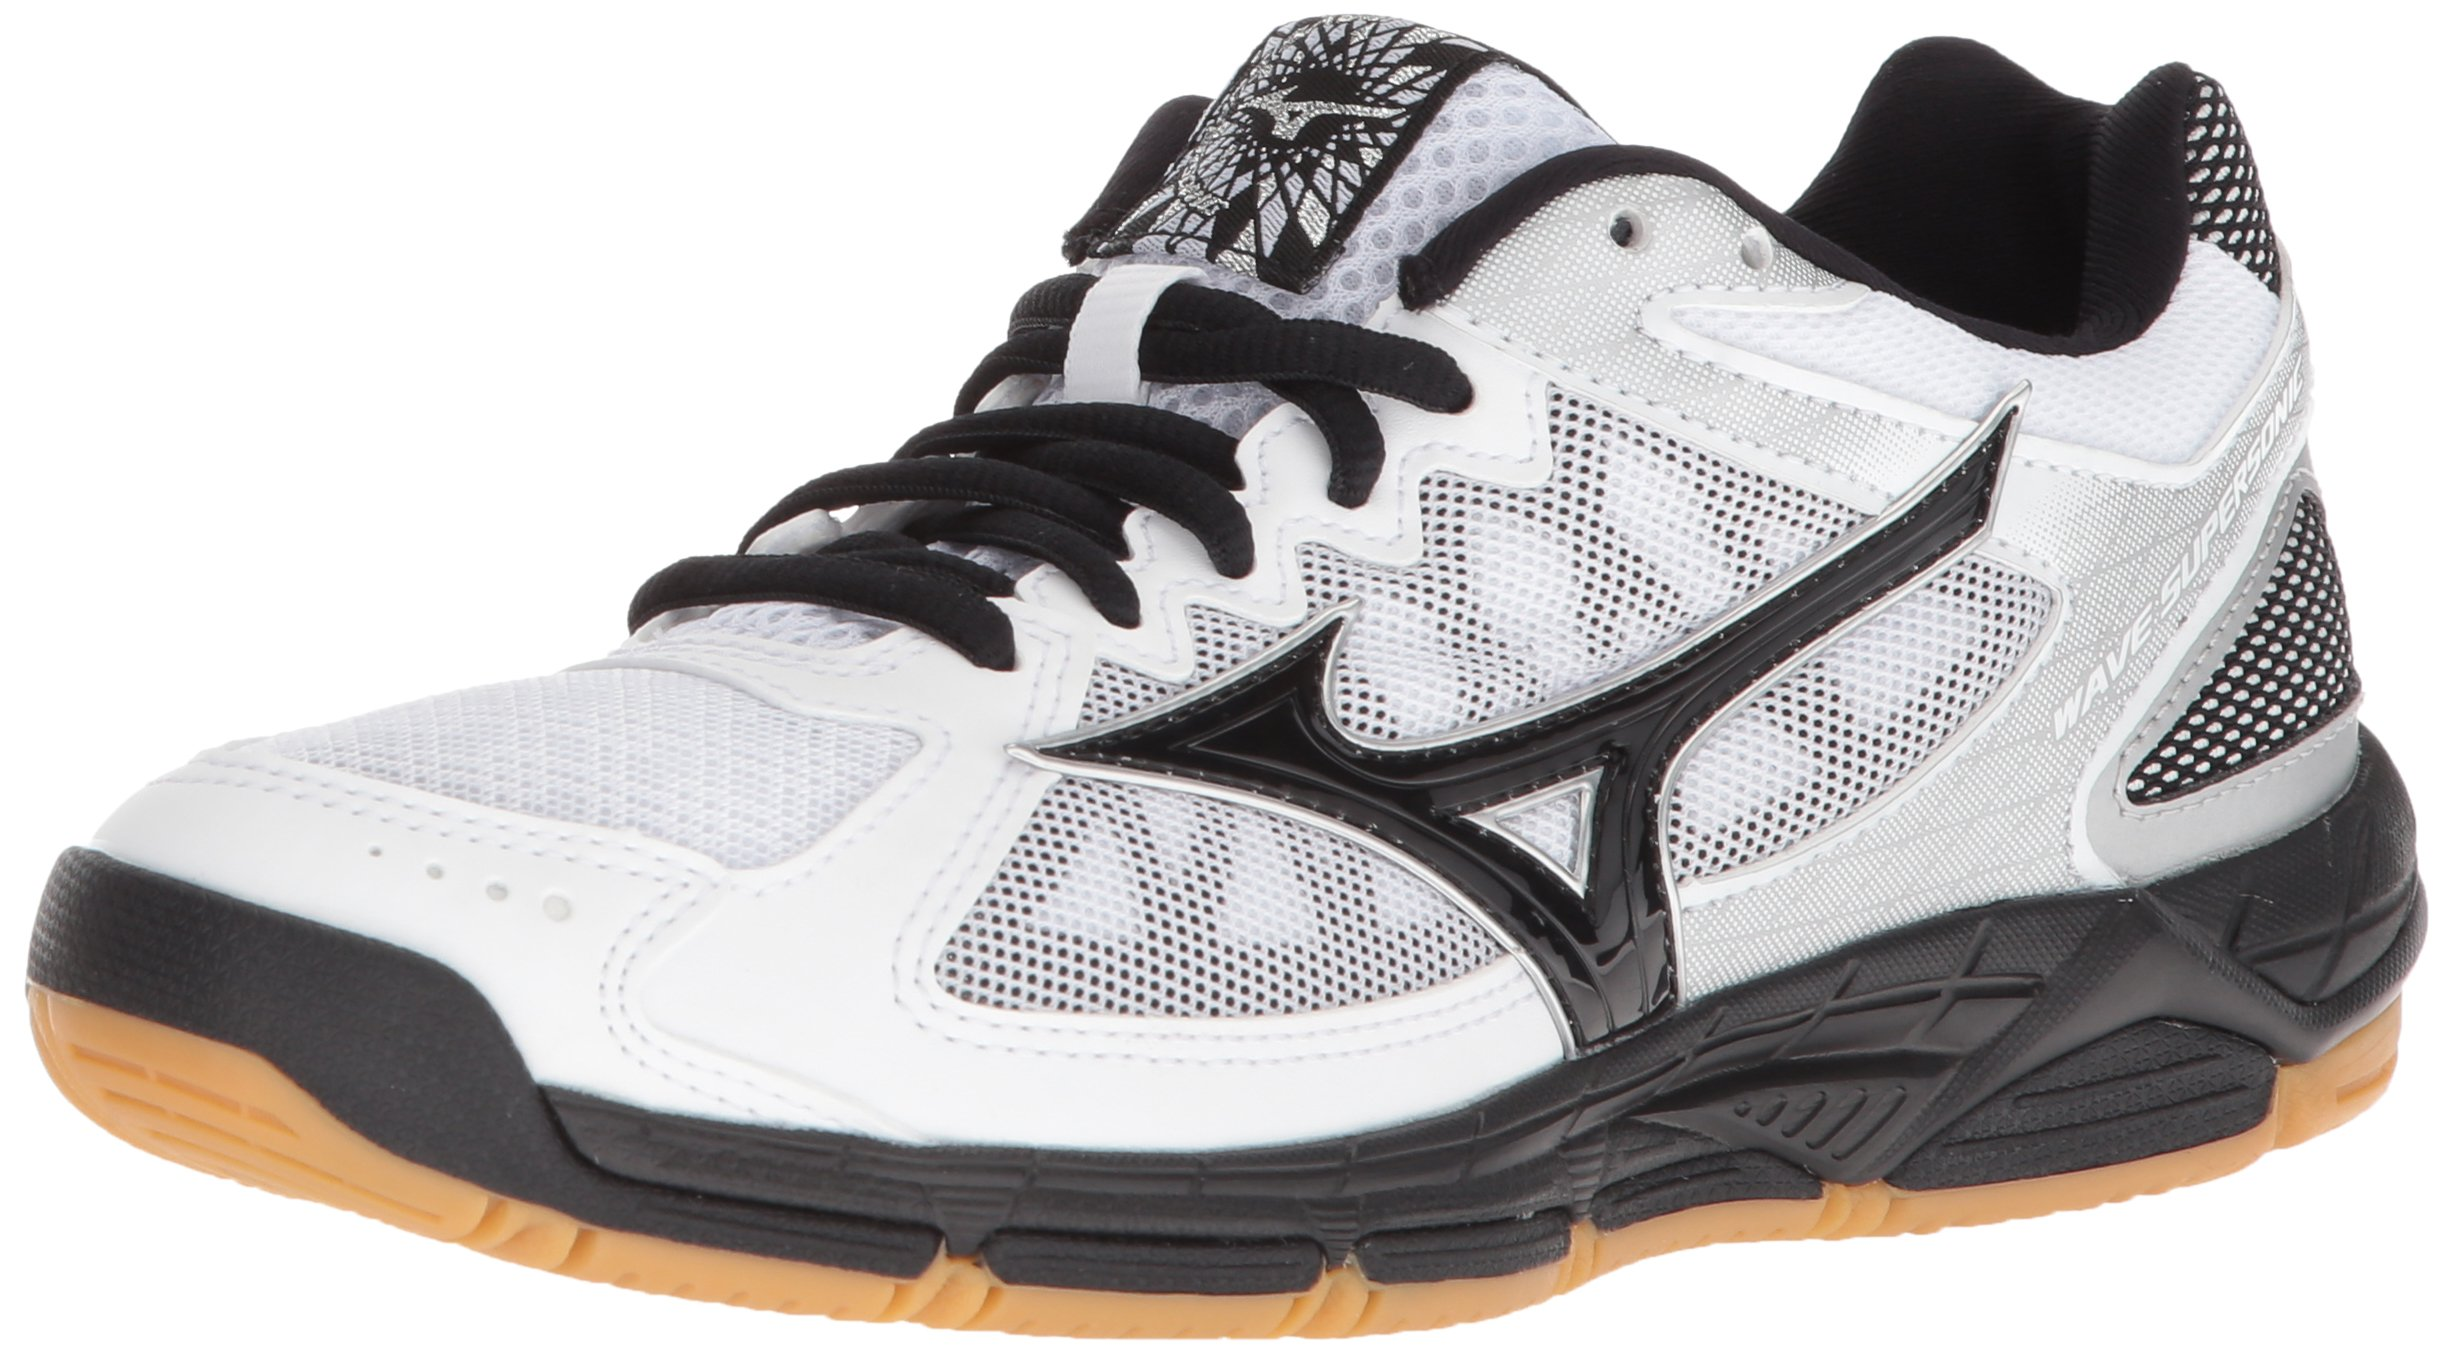 WAVE SUPERSONIC WOMENS WHITE-BLACK 9.5 White/Black by Mizuno